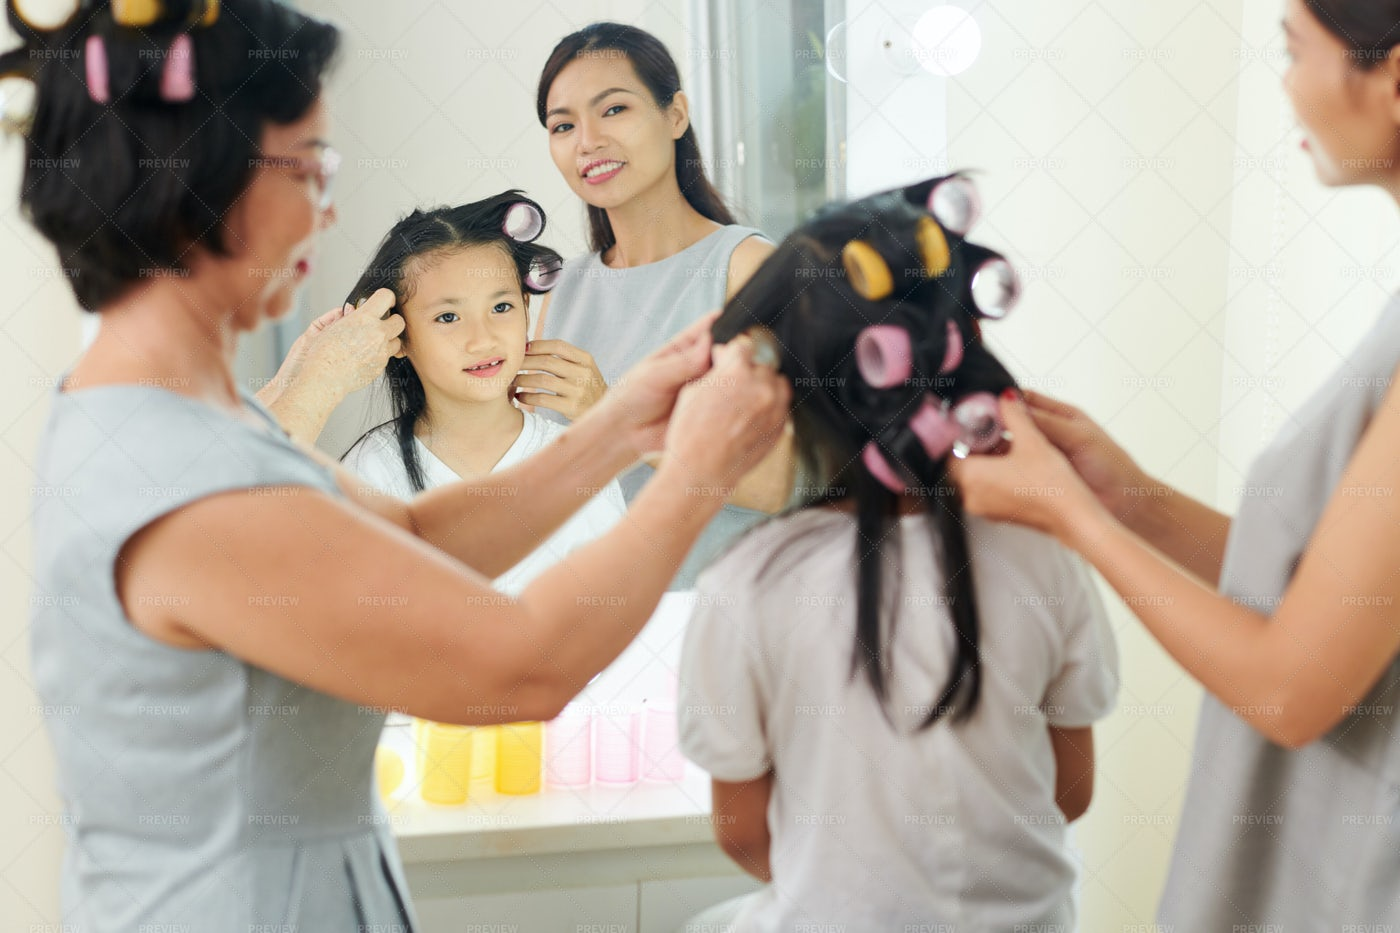 Family Preparing For Holiday Event: Stock Photos